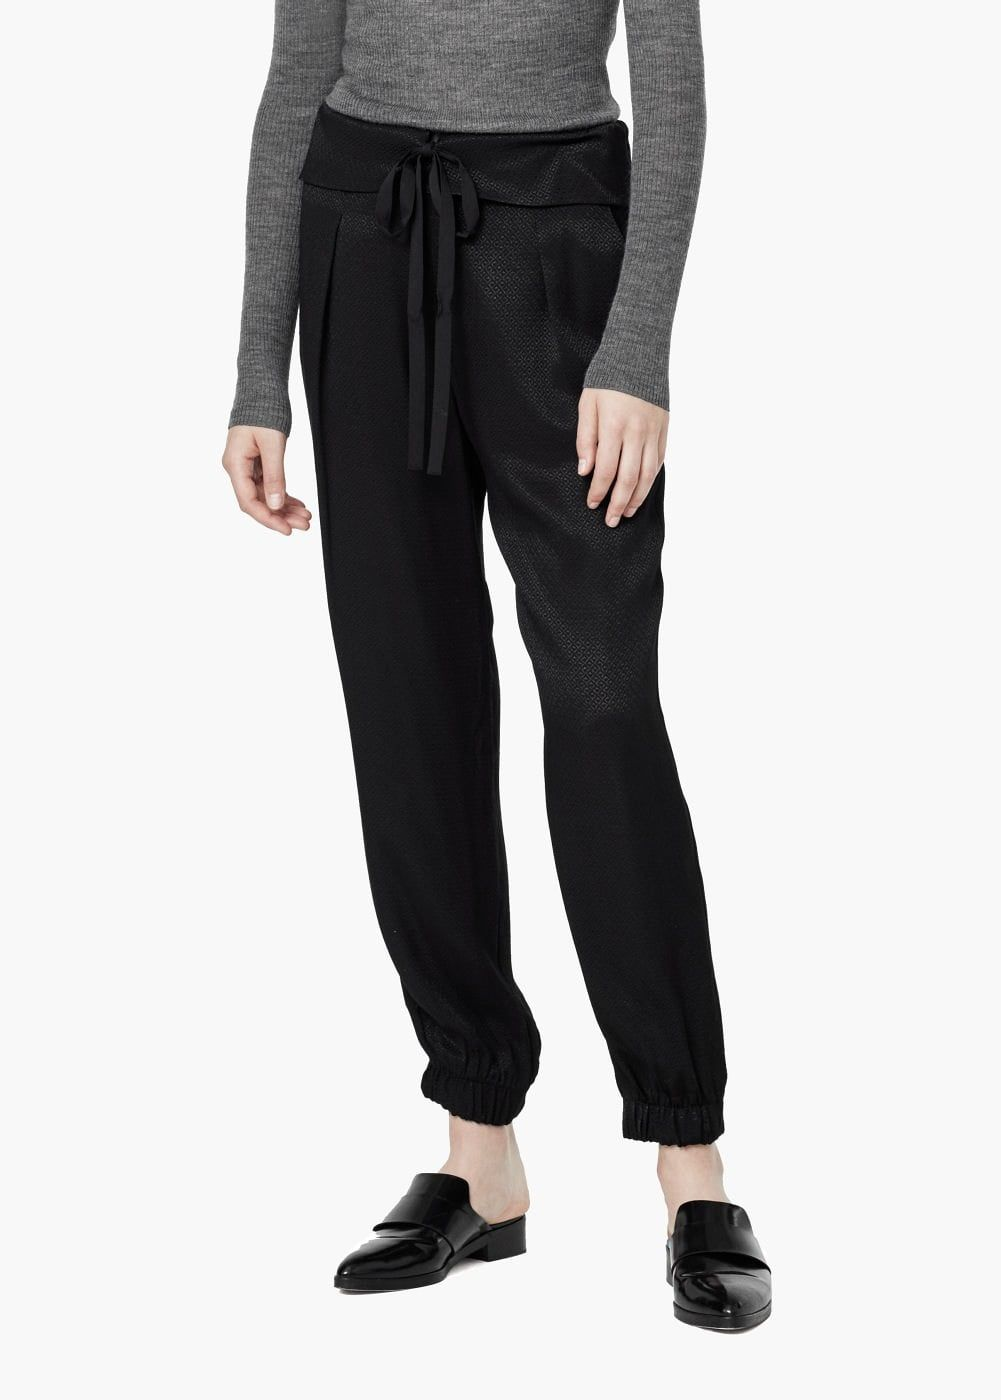 Trousers - Clothing - Woman | OUTLET Lithuania